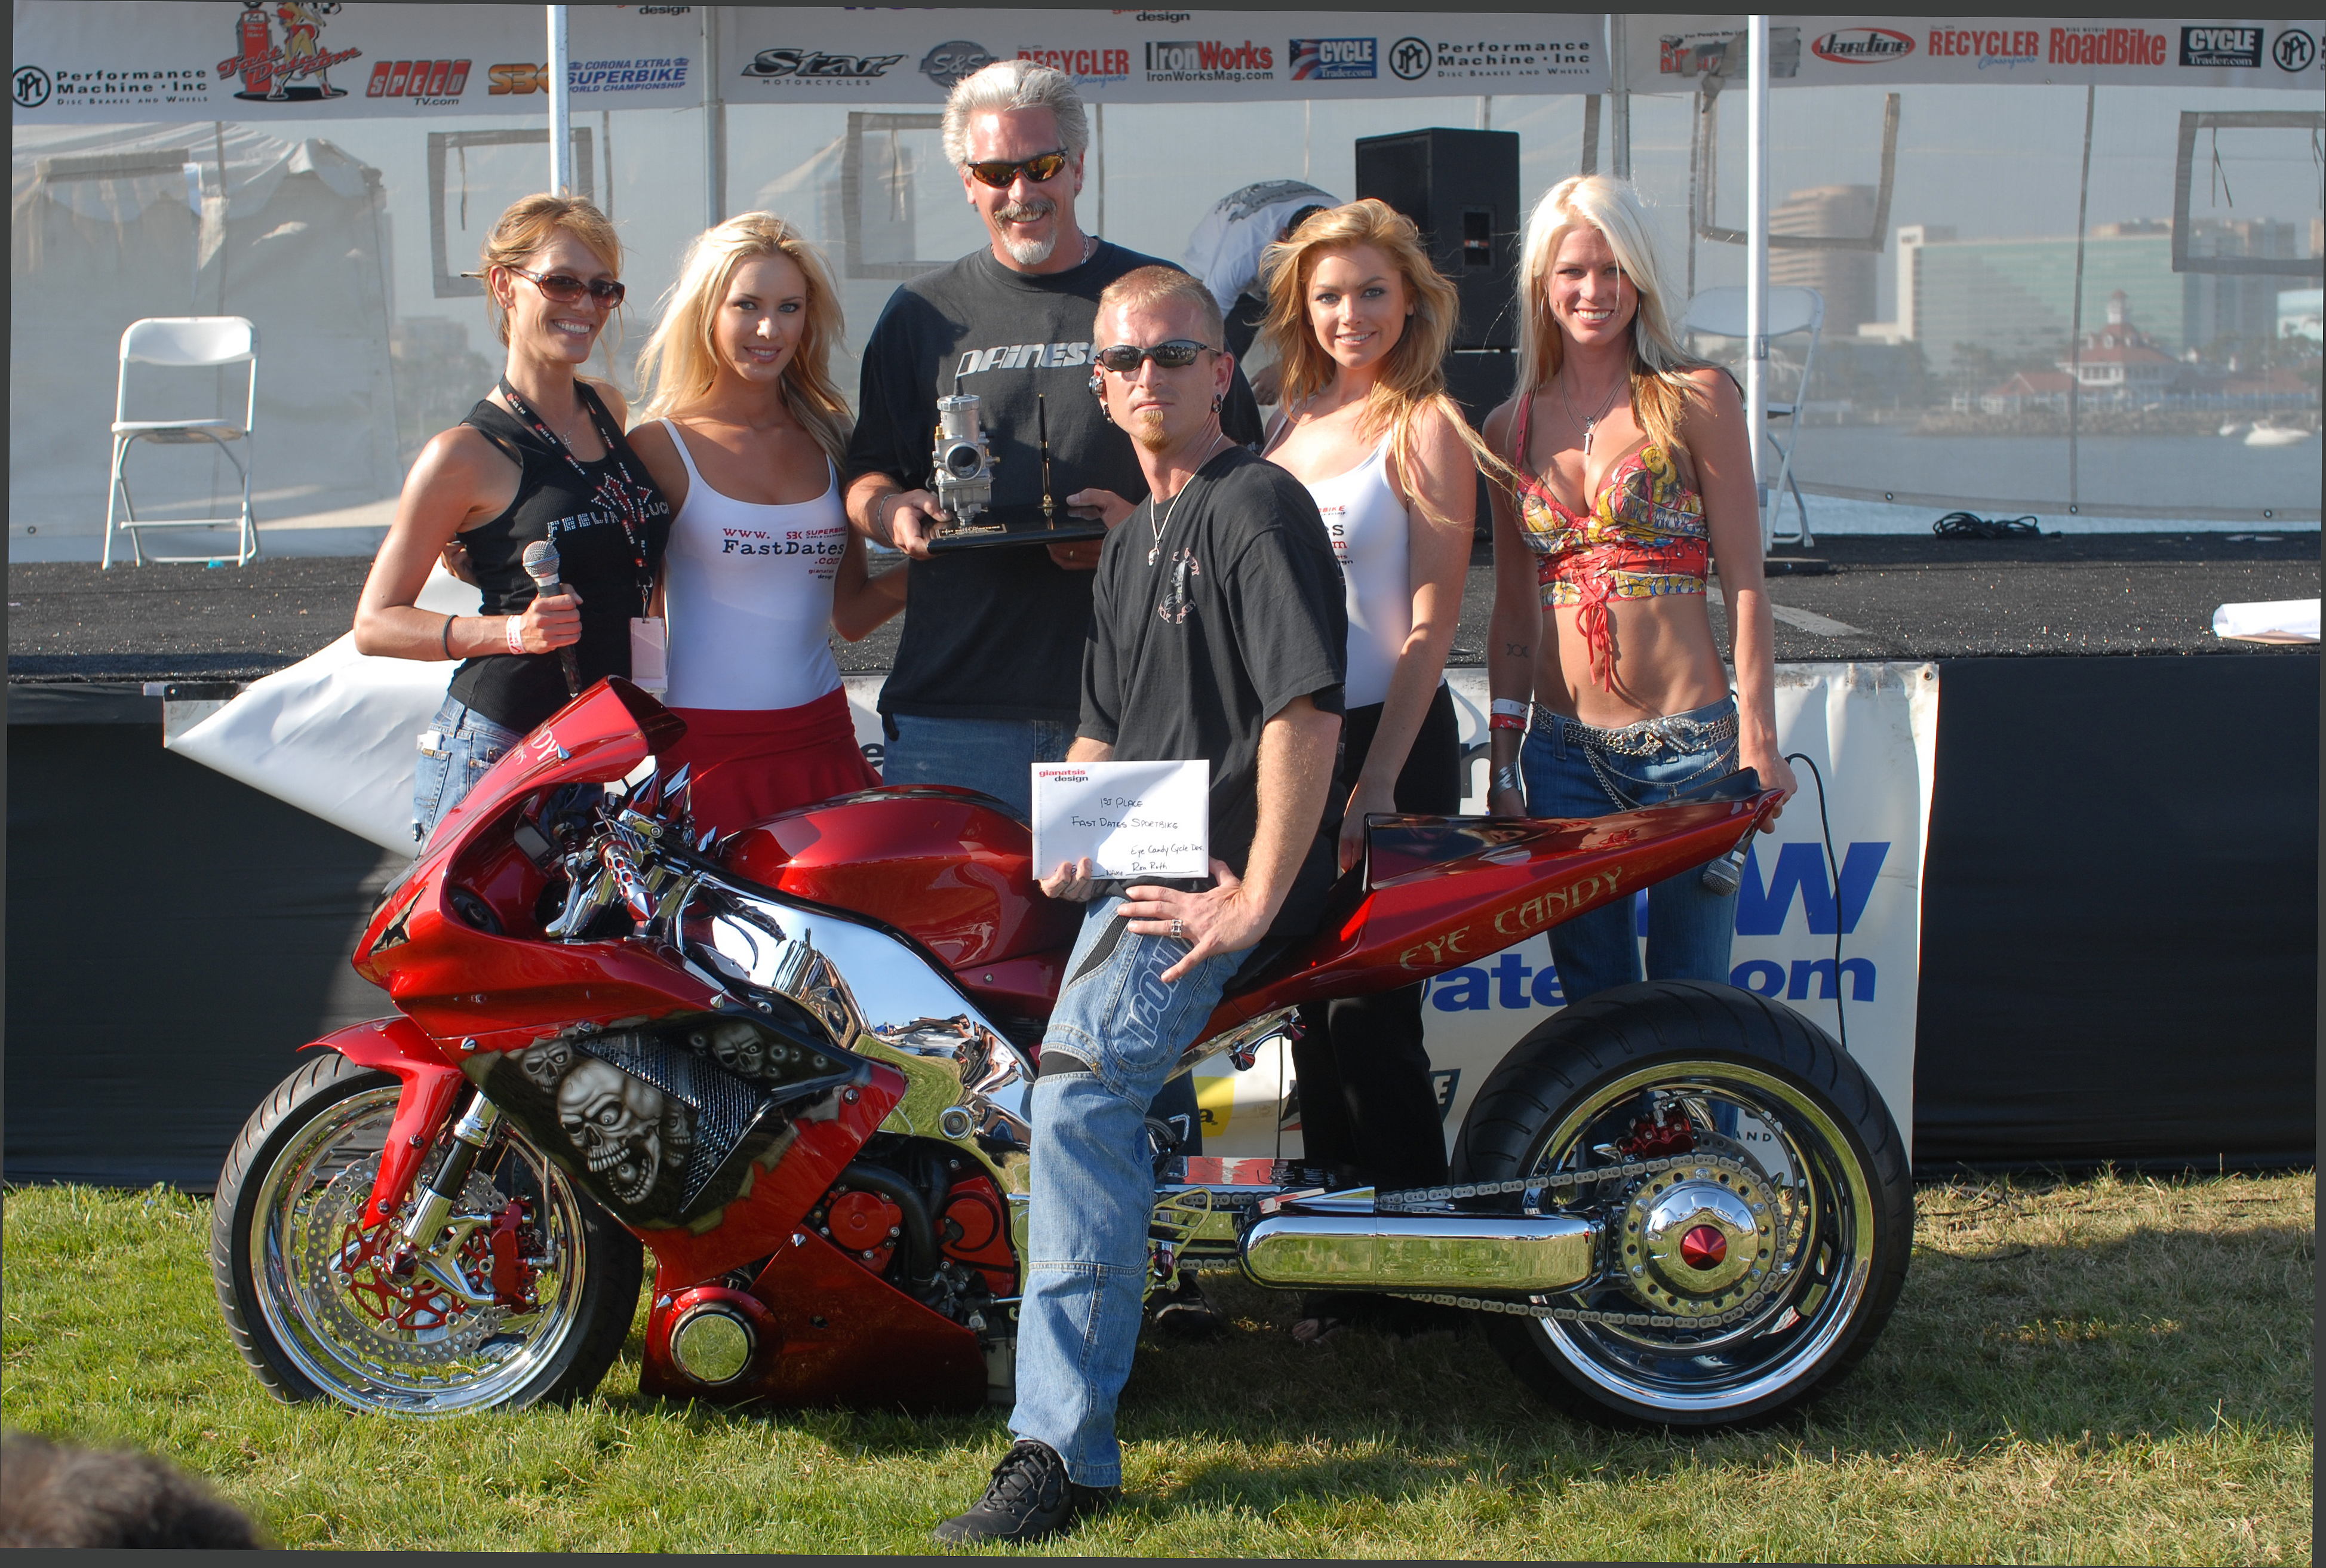 motorcycle roadracing and sportbike news - fastdates pit lane